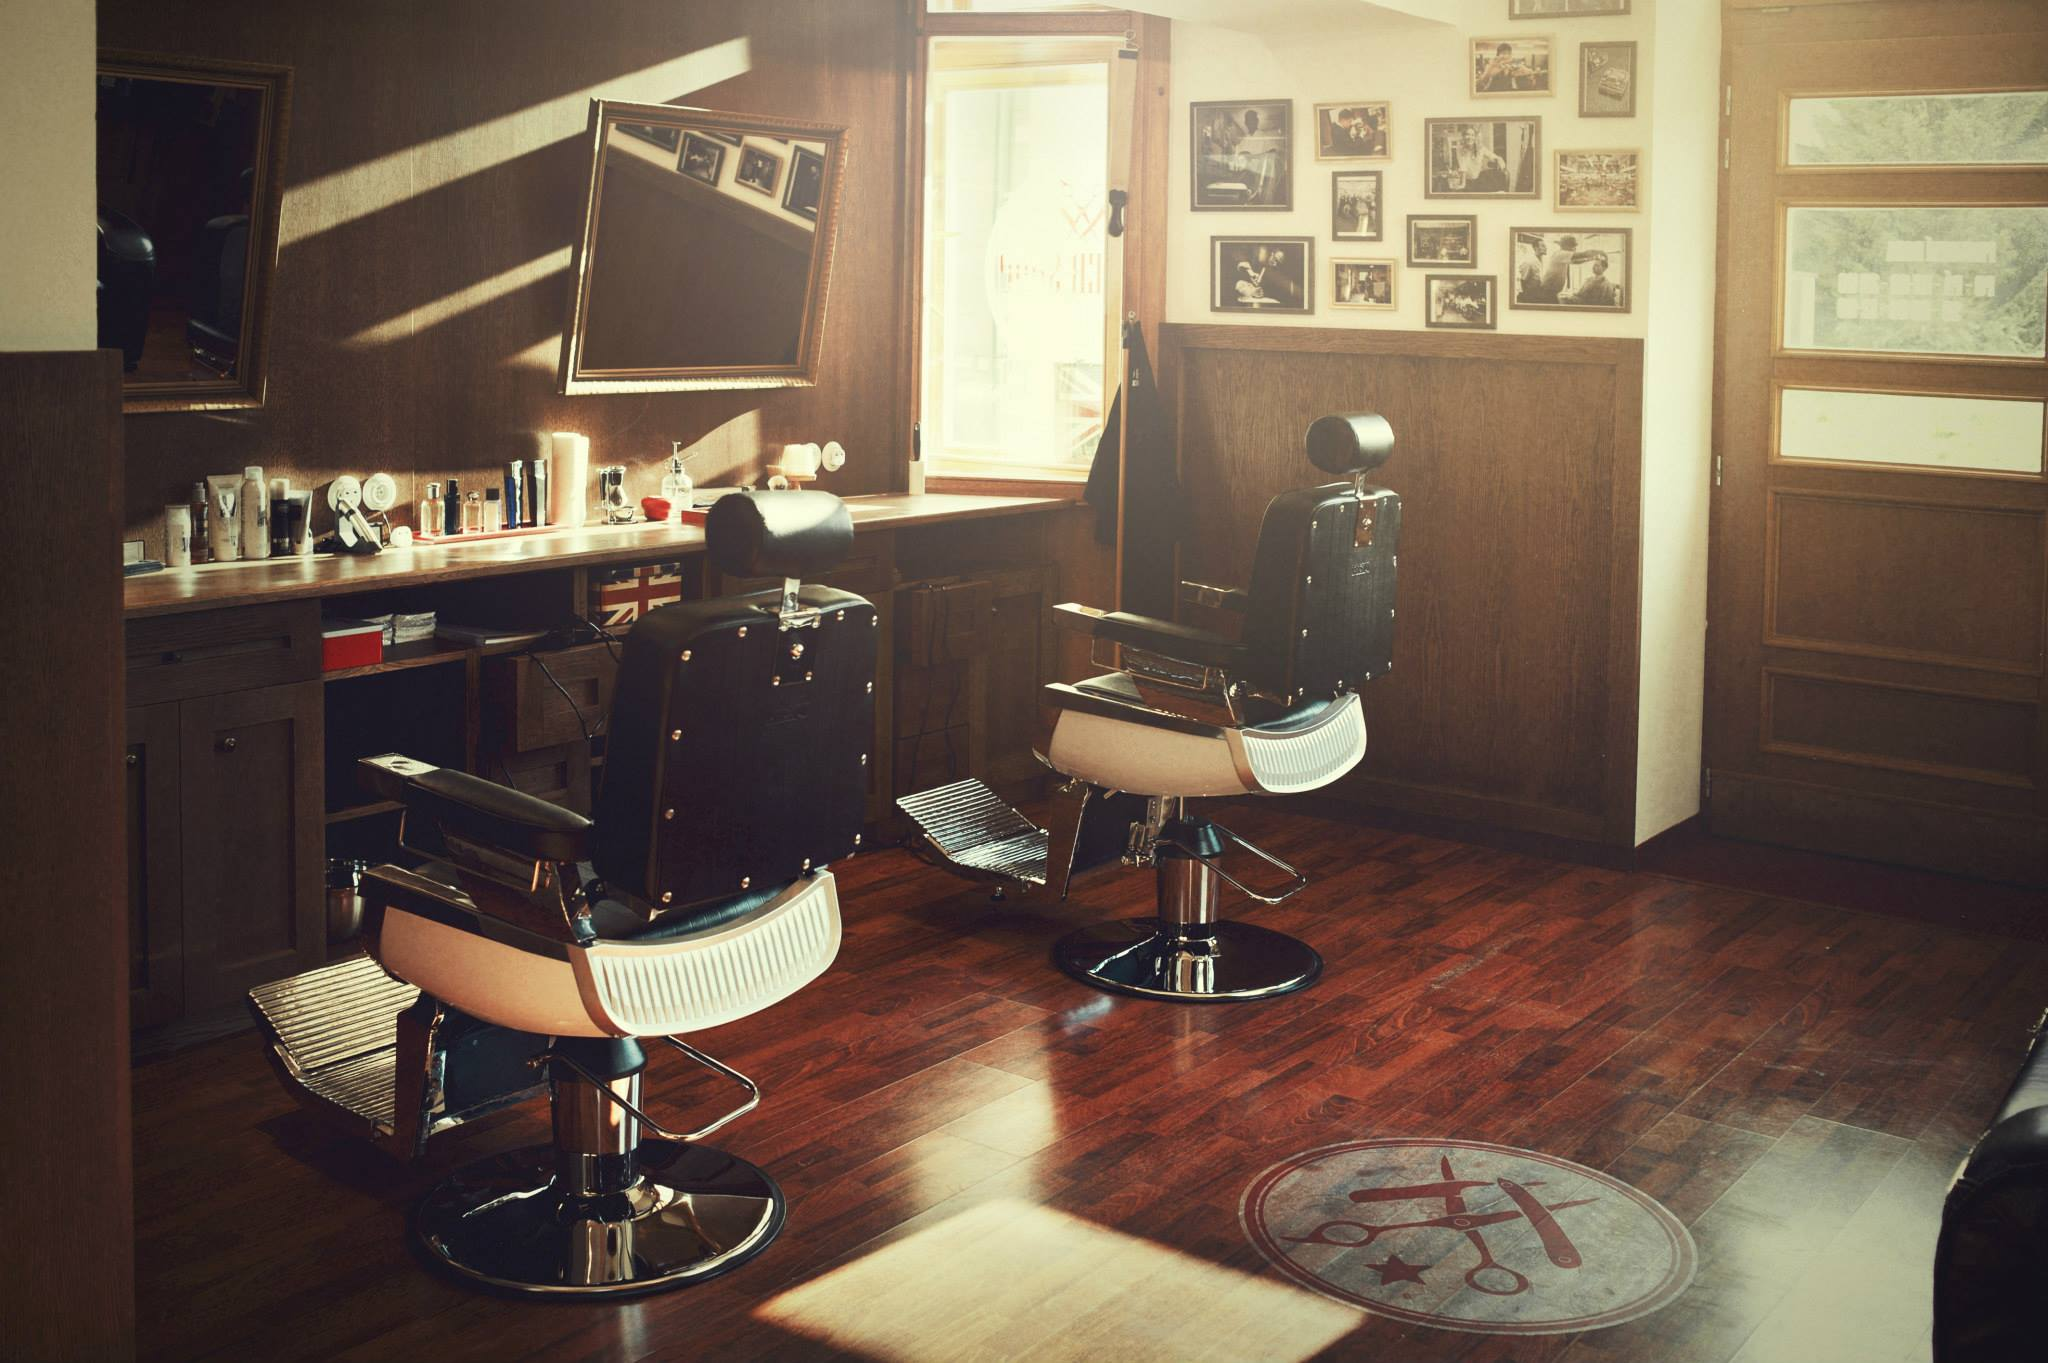 Barber shop Cooper, Jihlava